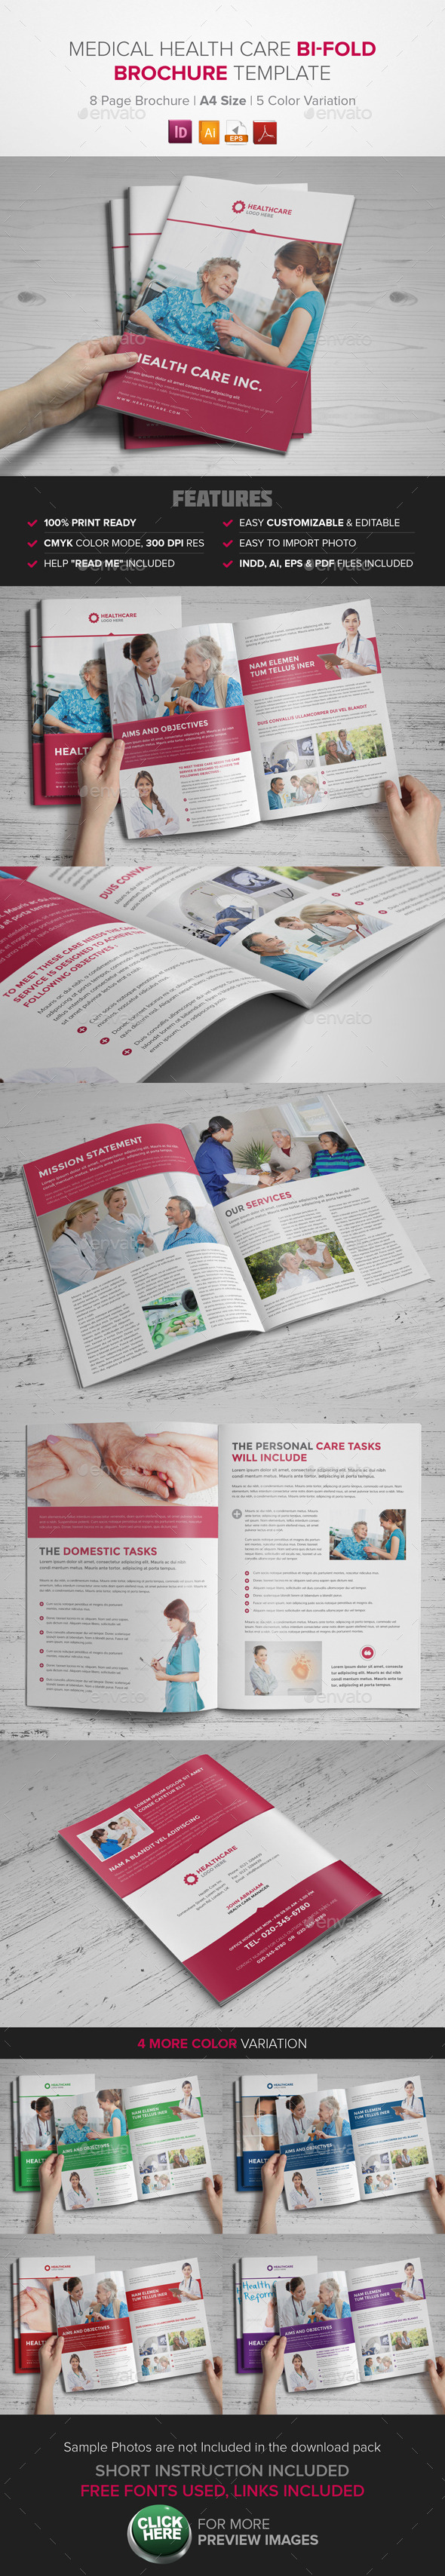 GraphicRiver Medical Health Care Bifold Brochure InDesign 9272838